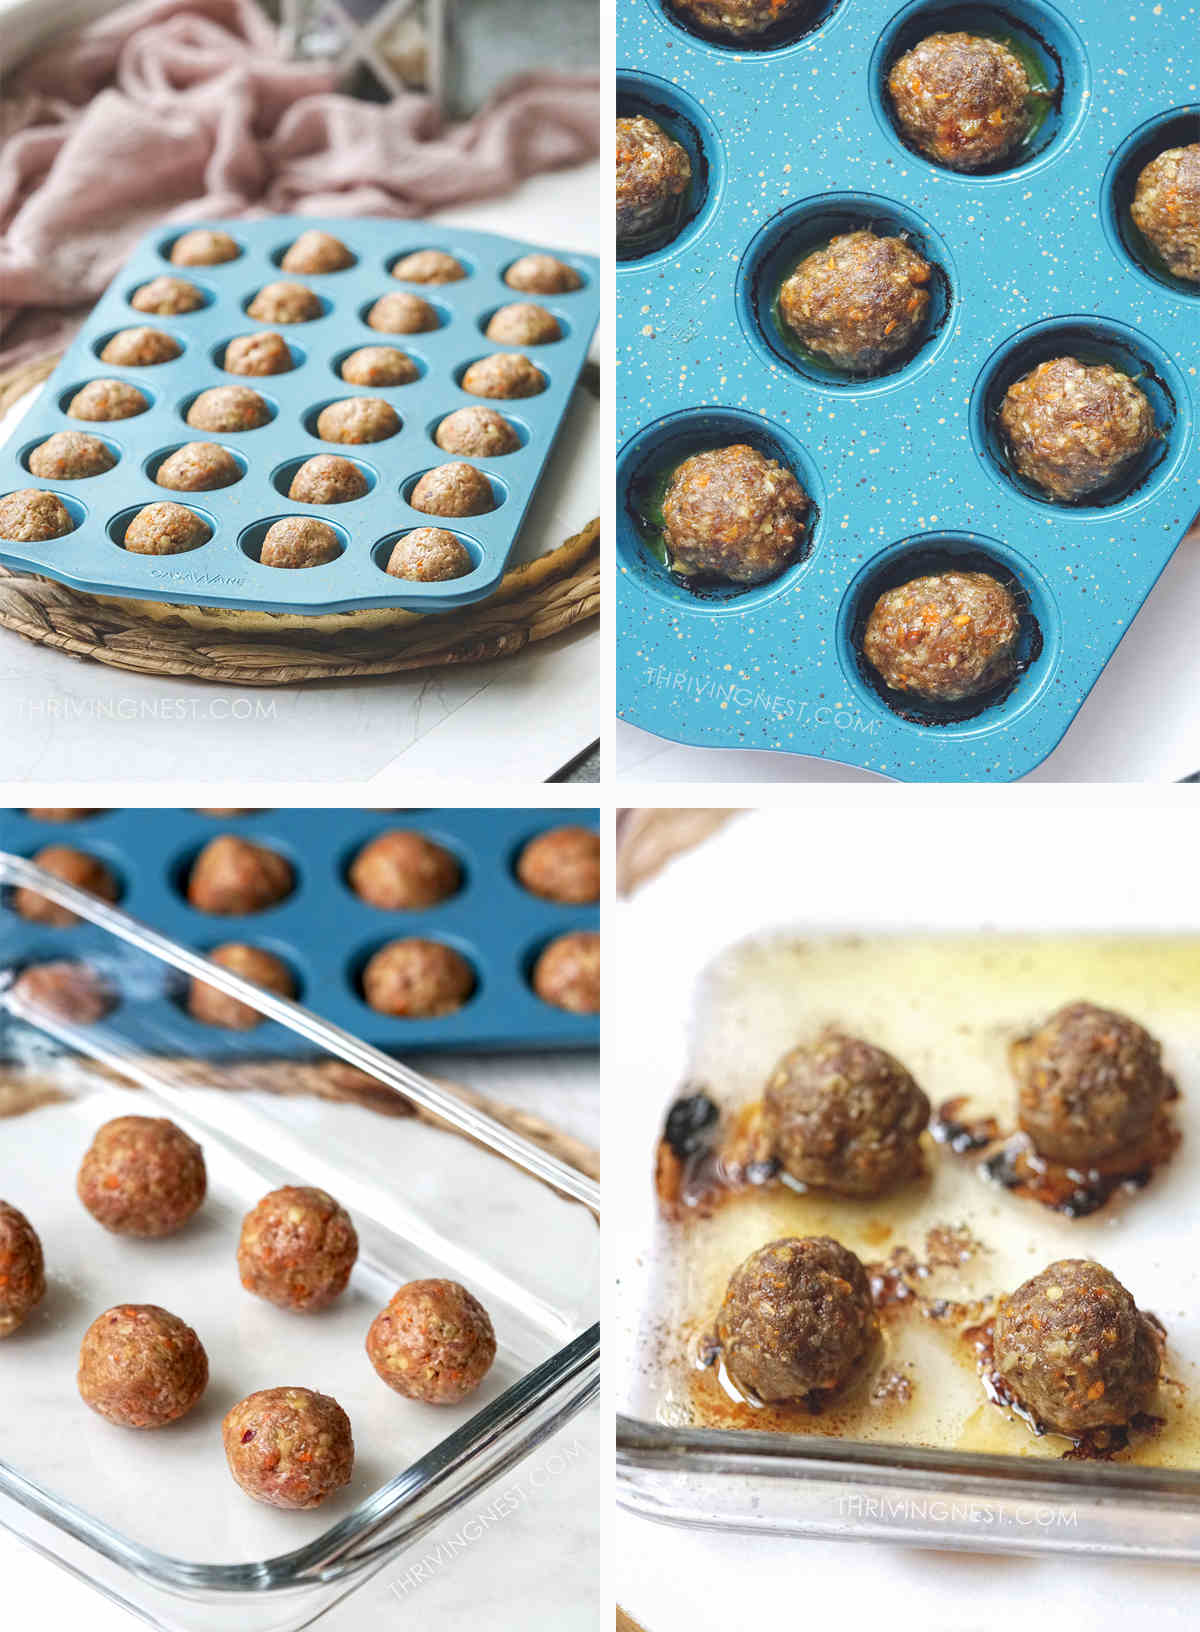 Process shots baked baby meatballs in a muffin pan and a glass pan.